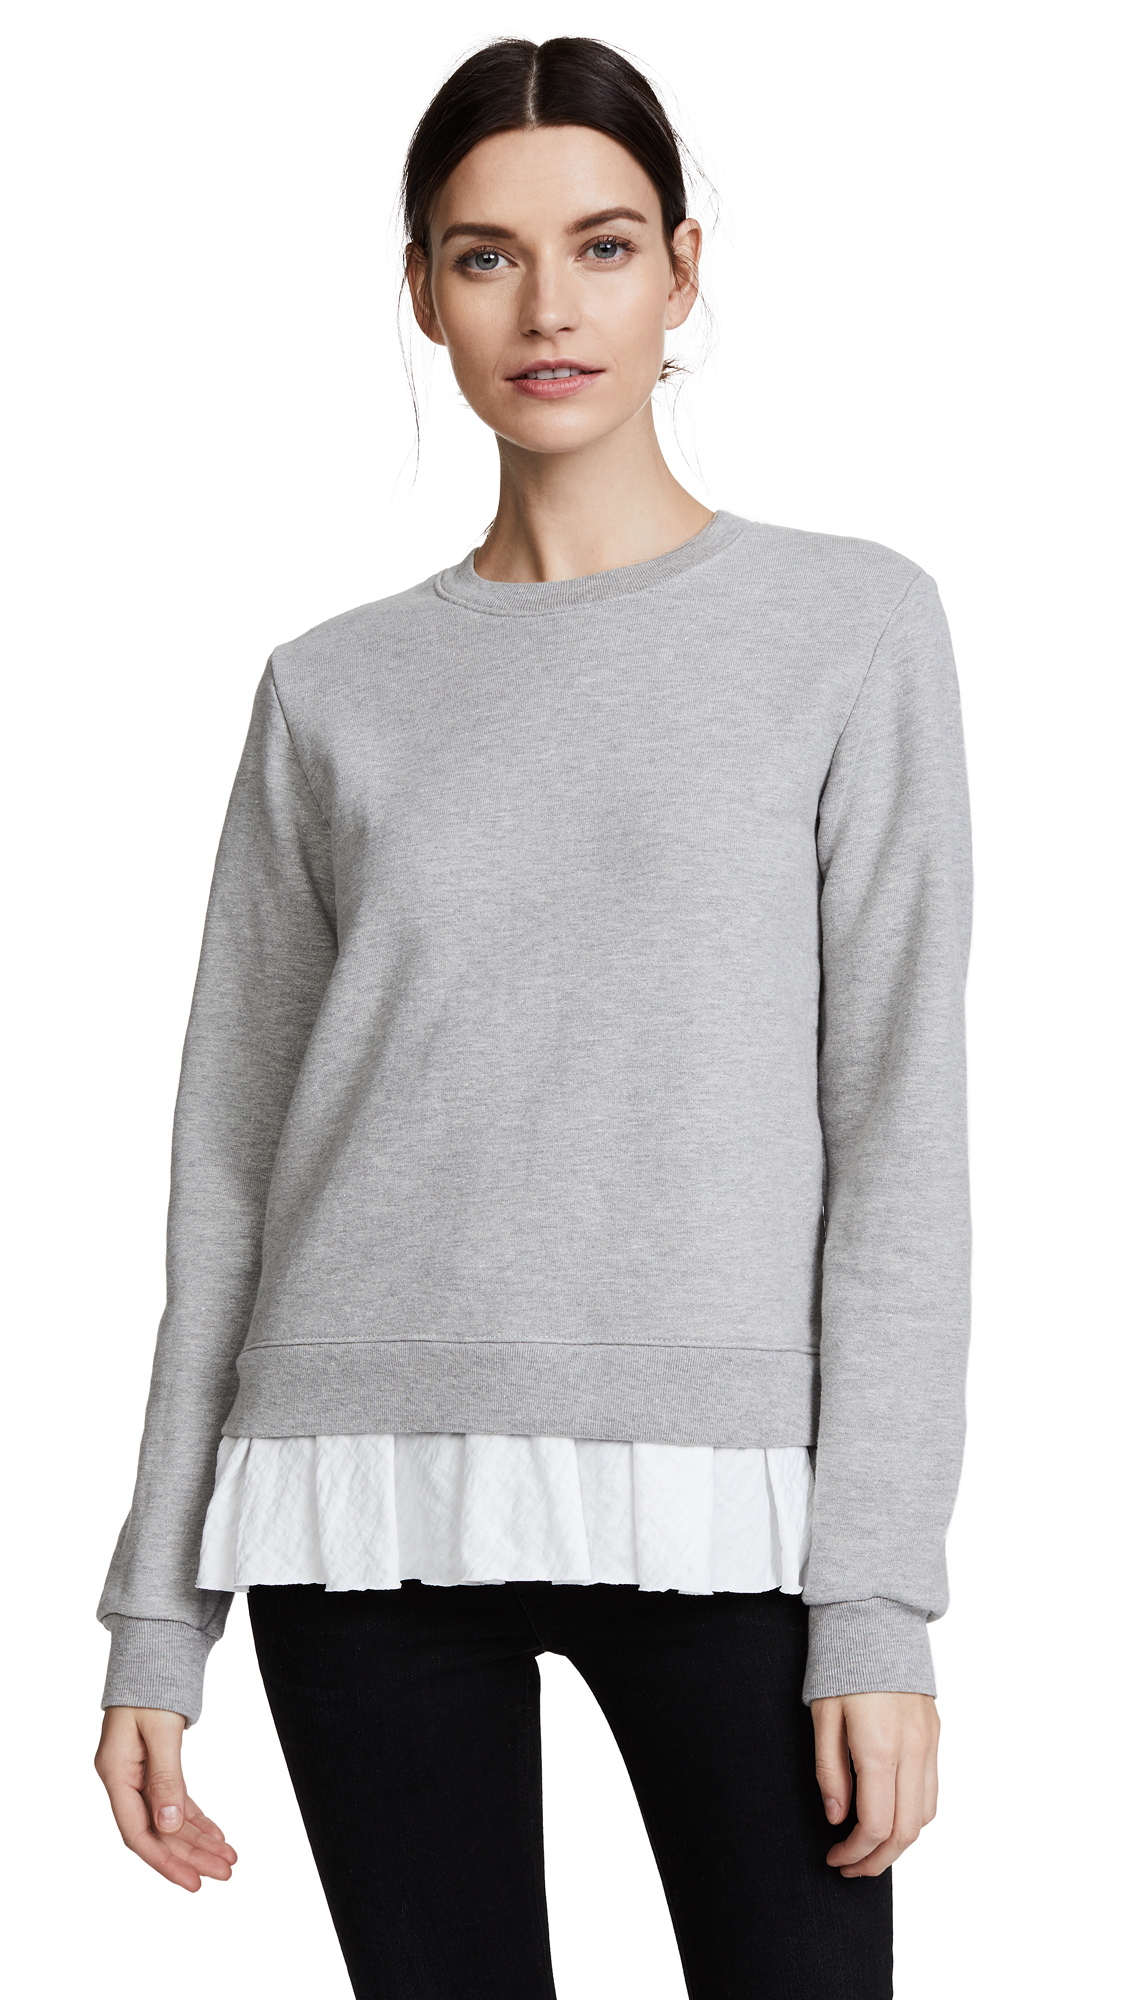 Clu Clu Too Ruffled Sweatshirt In Heather Grey/White